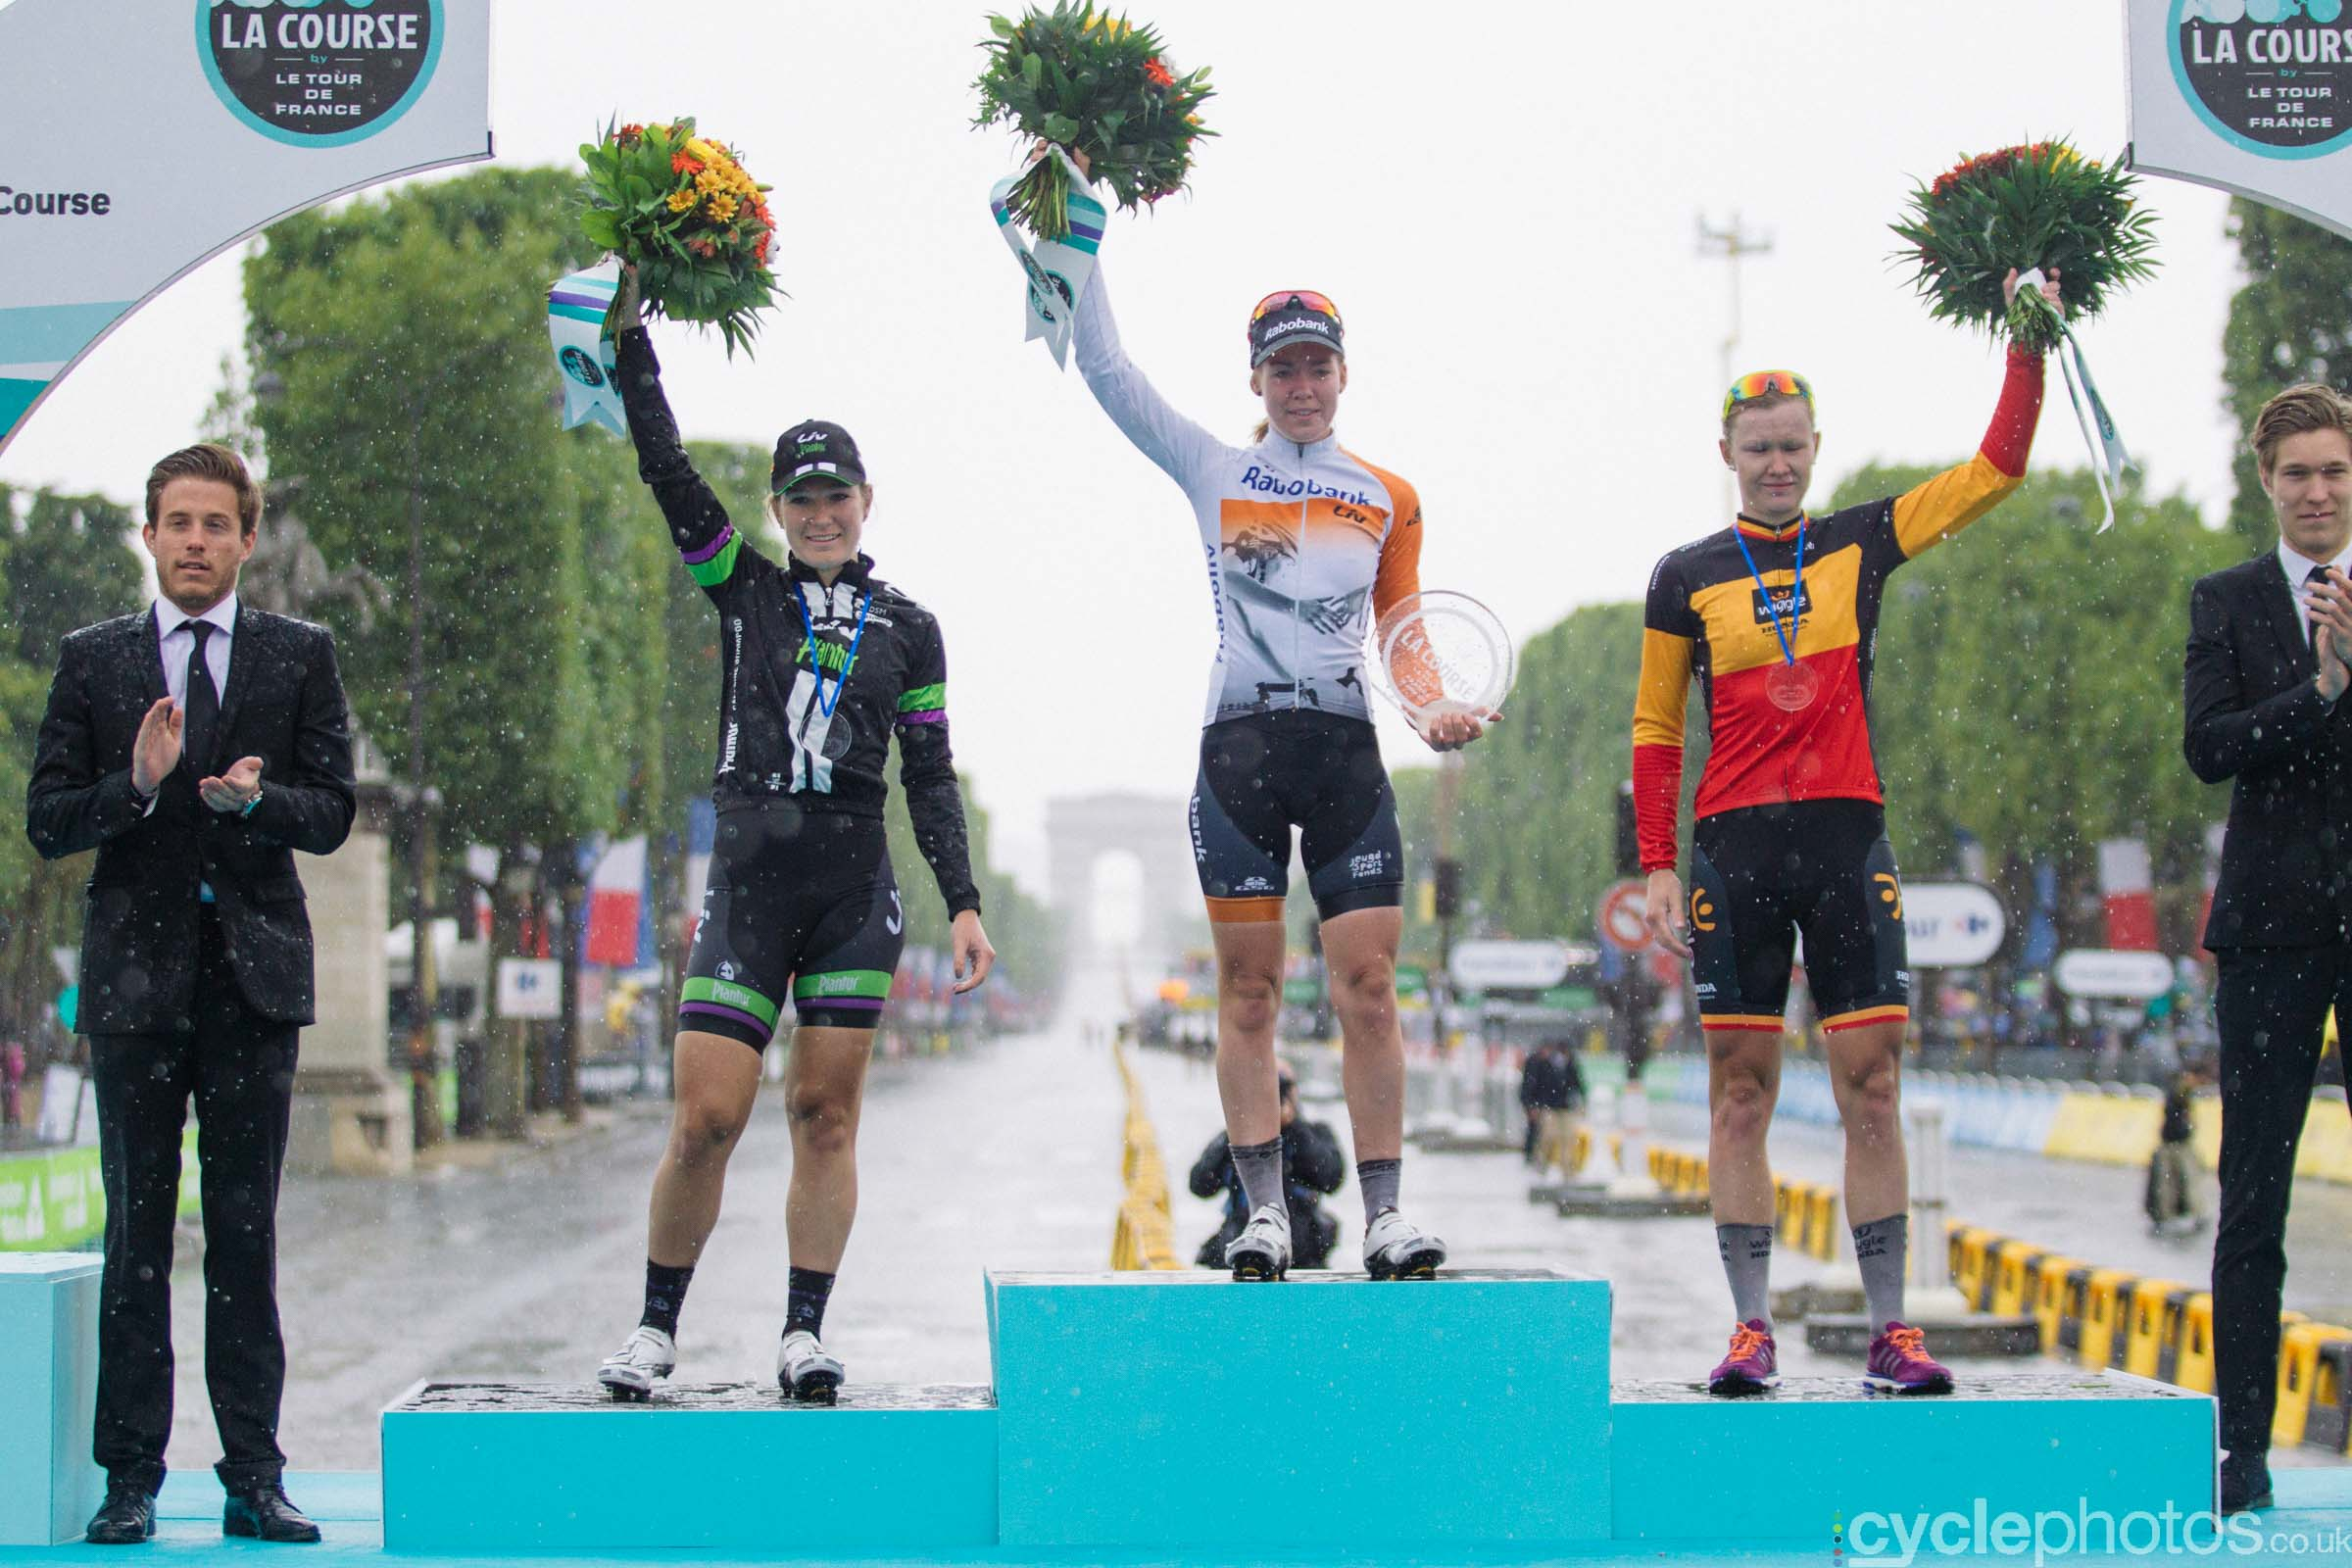 The podium of the 2015 edition of the La Course by Le Tour women's road cycling race.